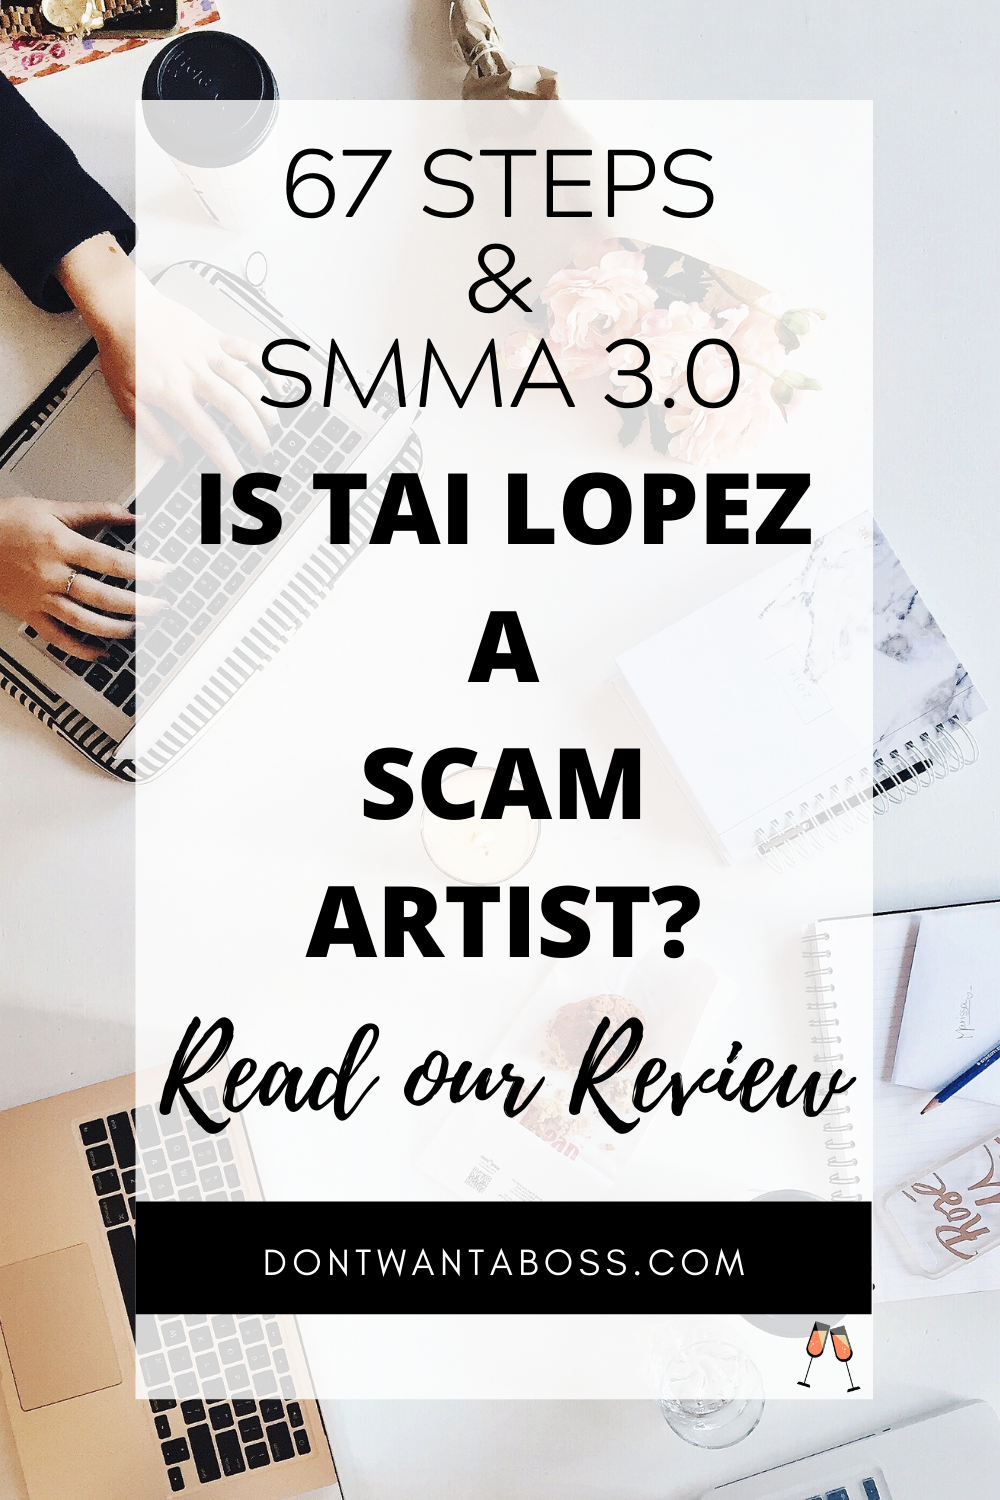 67 Steps & SMMA 3.0 Reviews - Is Tai Lopez a Scam Artist?